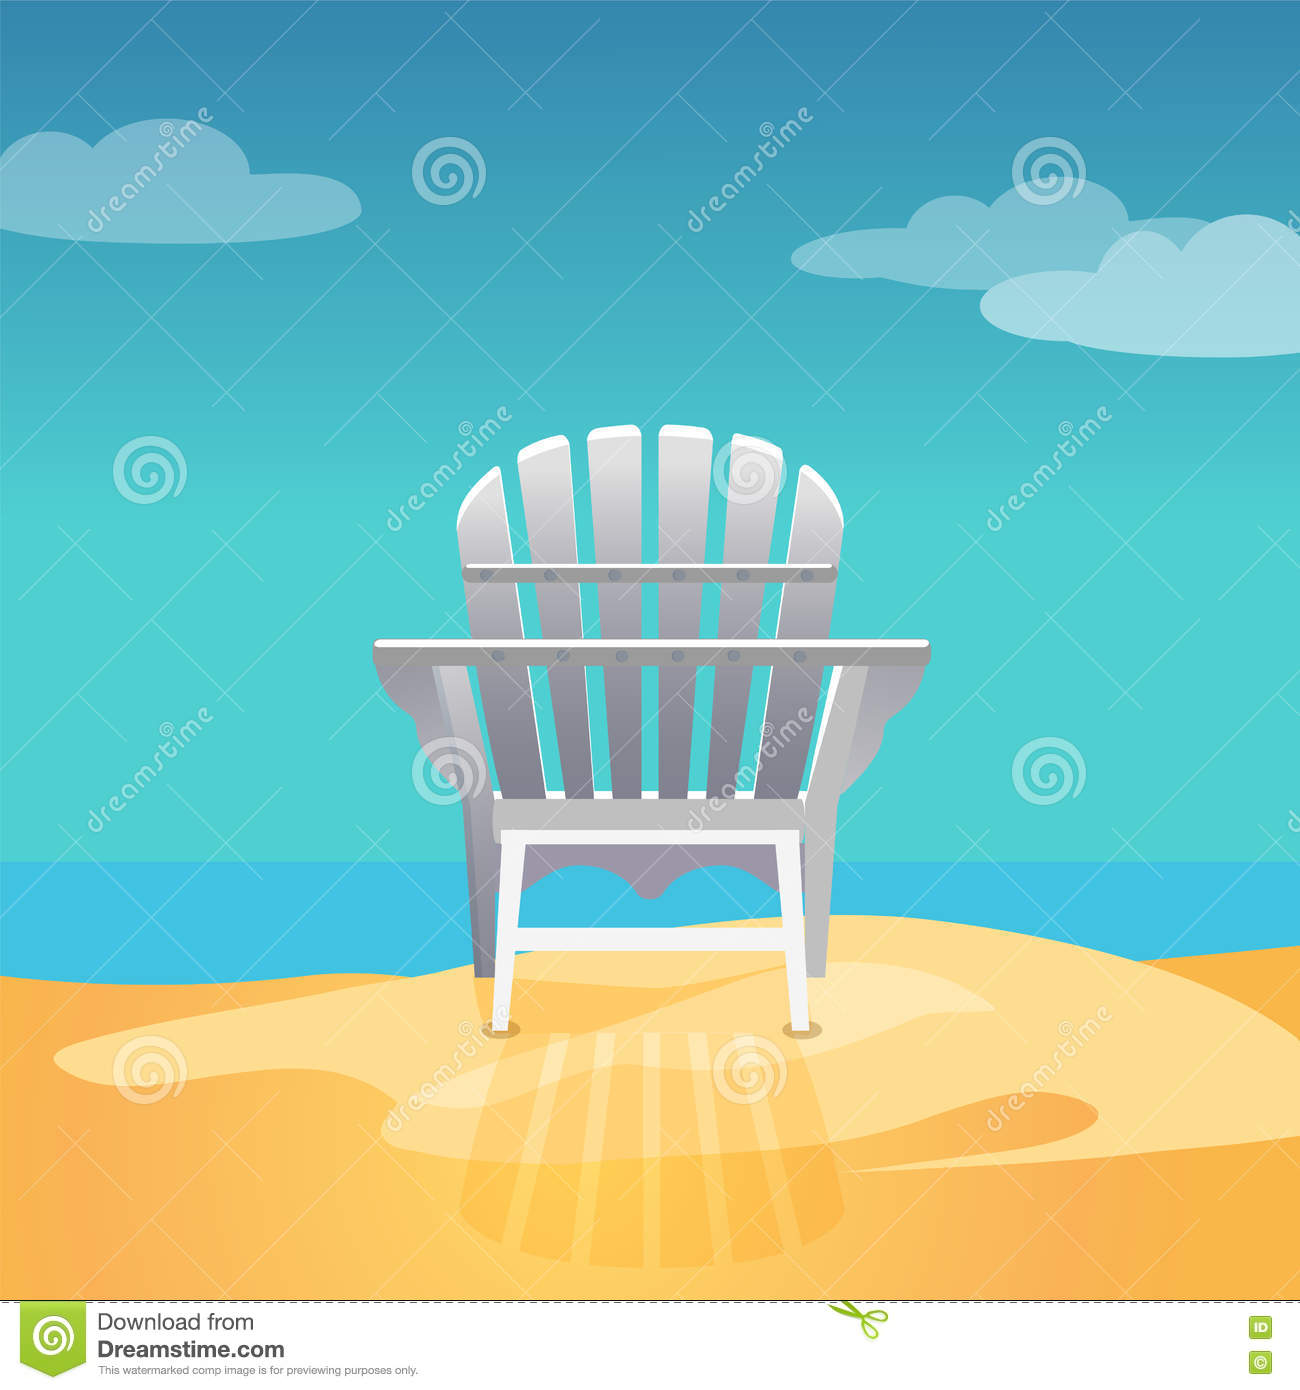 Adirondack Chair On The Sea Beach Standing On The Yellow Sand Under The  Blue Cloudy Sky